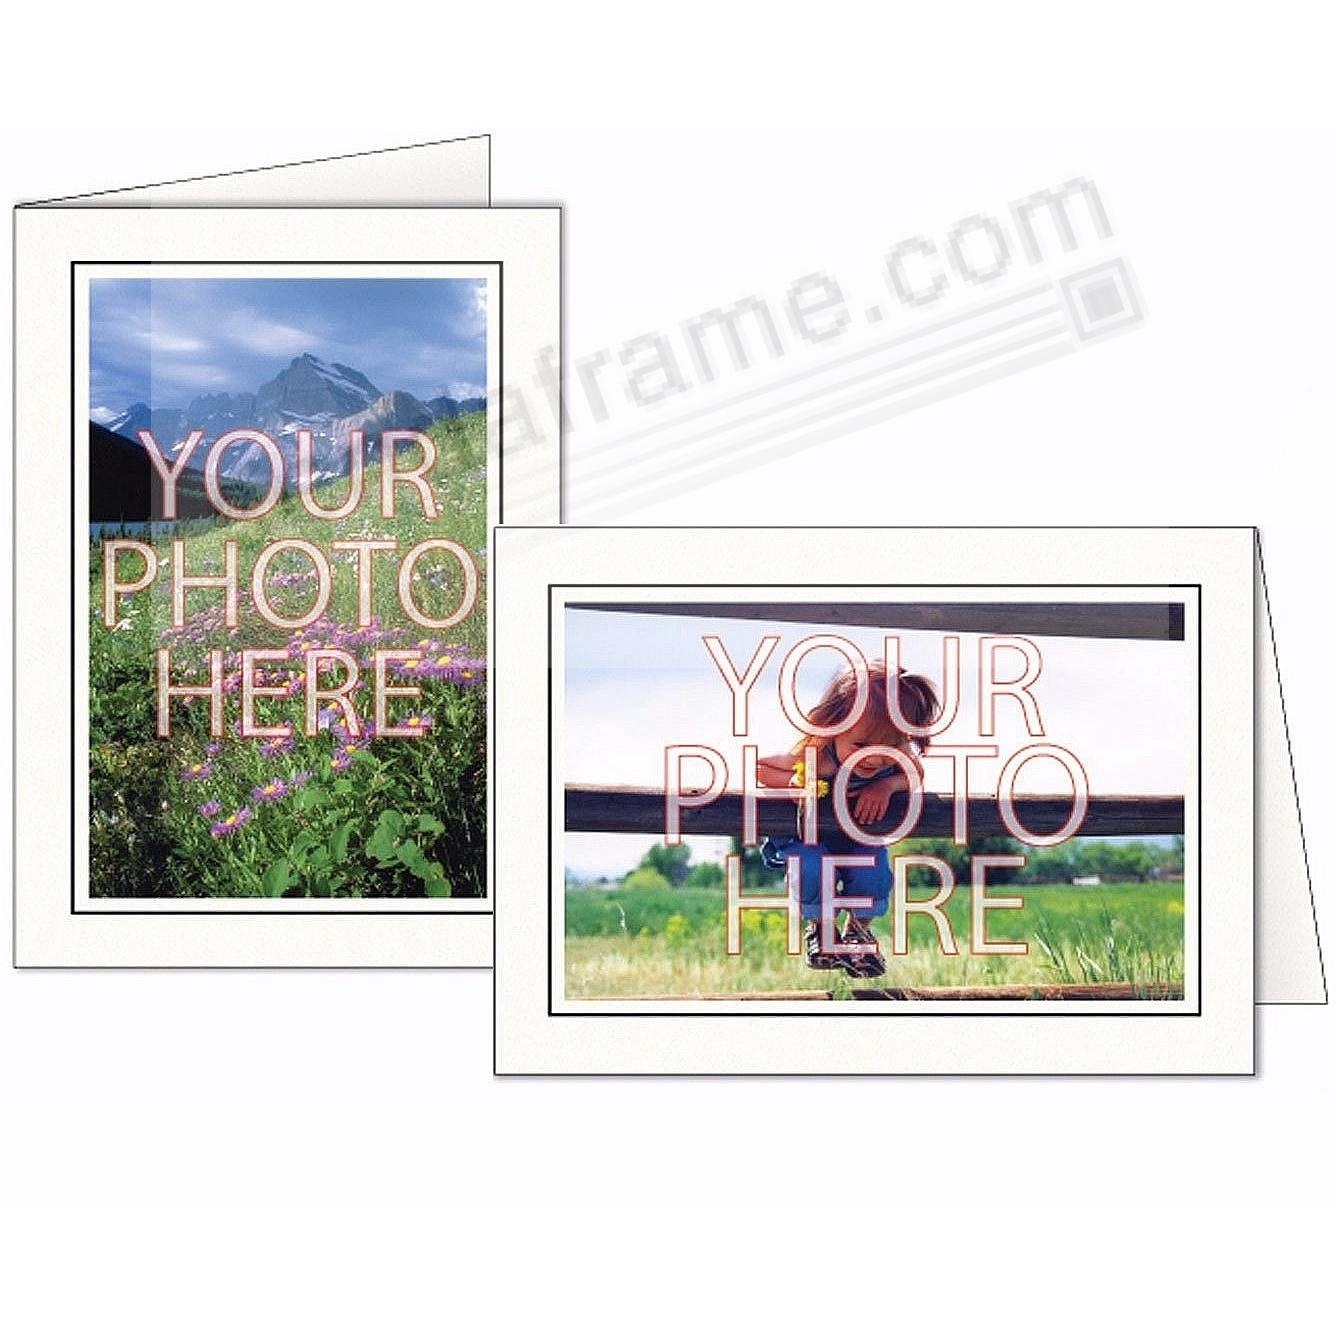 Bright White w/Raven-Bk Trim Border Photo Insert Card (sold in 10s)